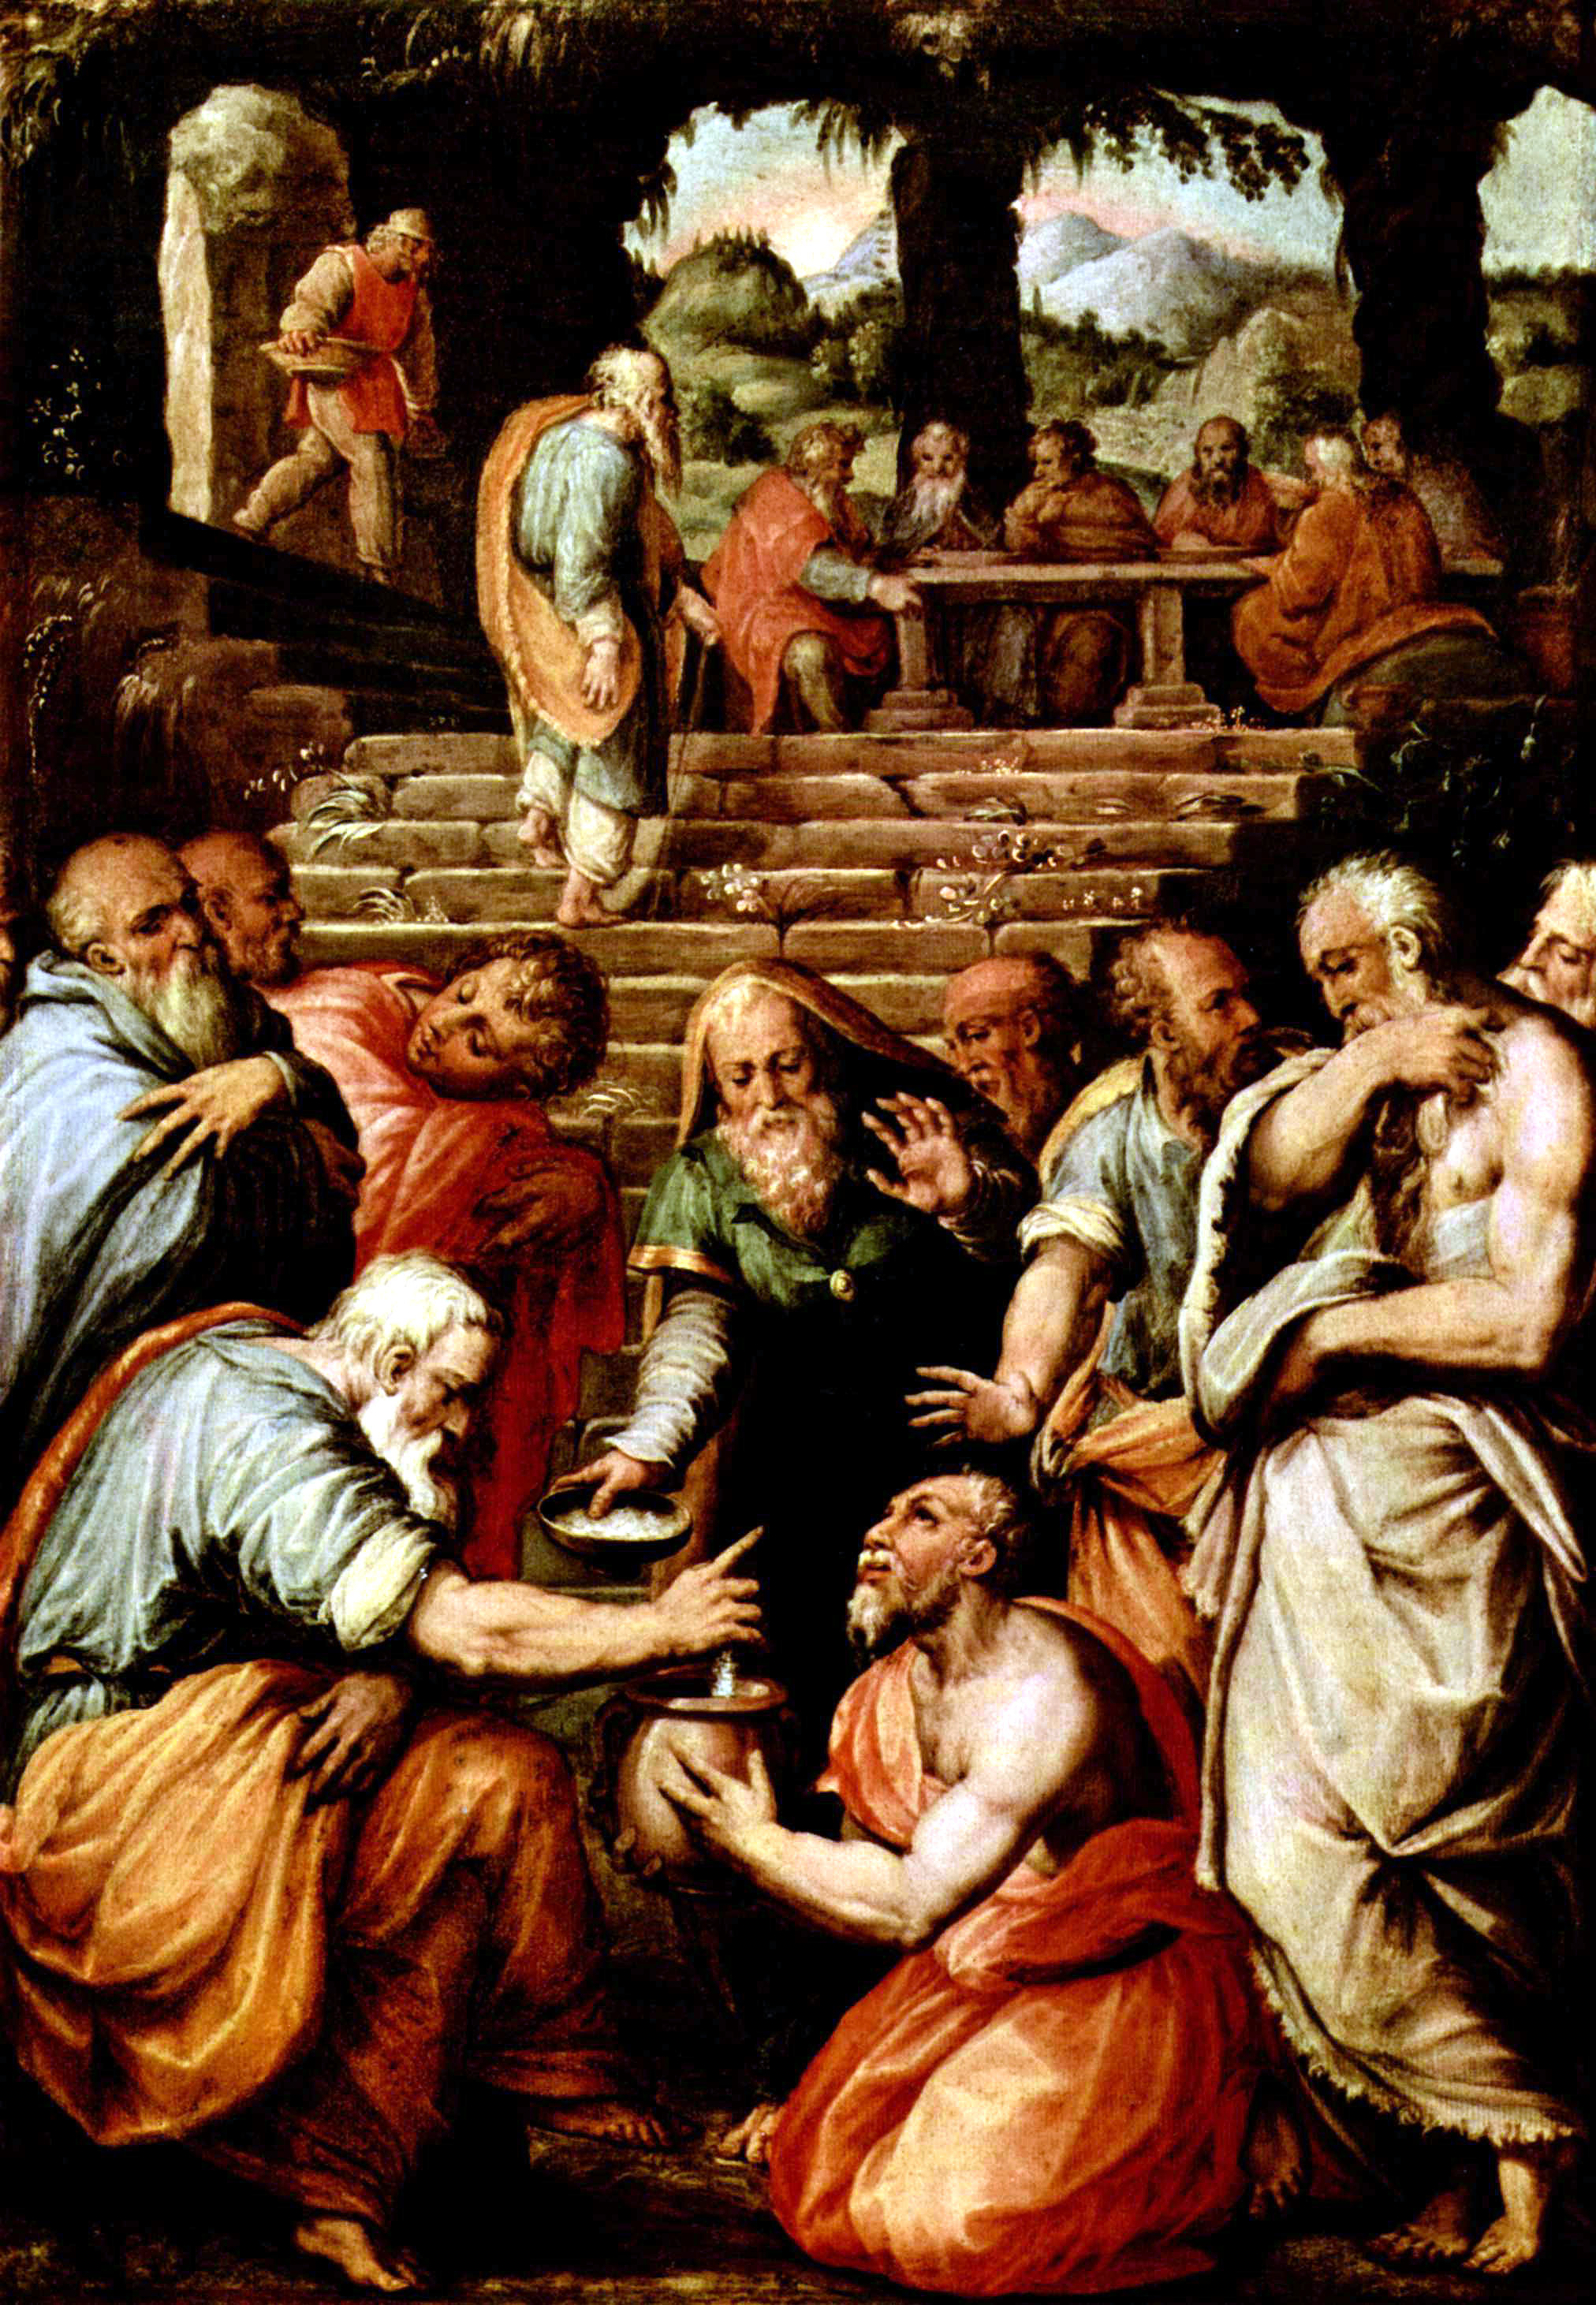 File Giorgio Vasari 001 further Wel e To London Presentation further Leonardo Da Vinci Powerpoint Presentation likewise Stock Photo Villa Del Balbianello Near The  une Of Lenno Lake  o Italy 23613649 as well Agostino Carracci 1063324 W. on famous italian paintings